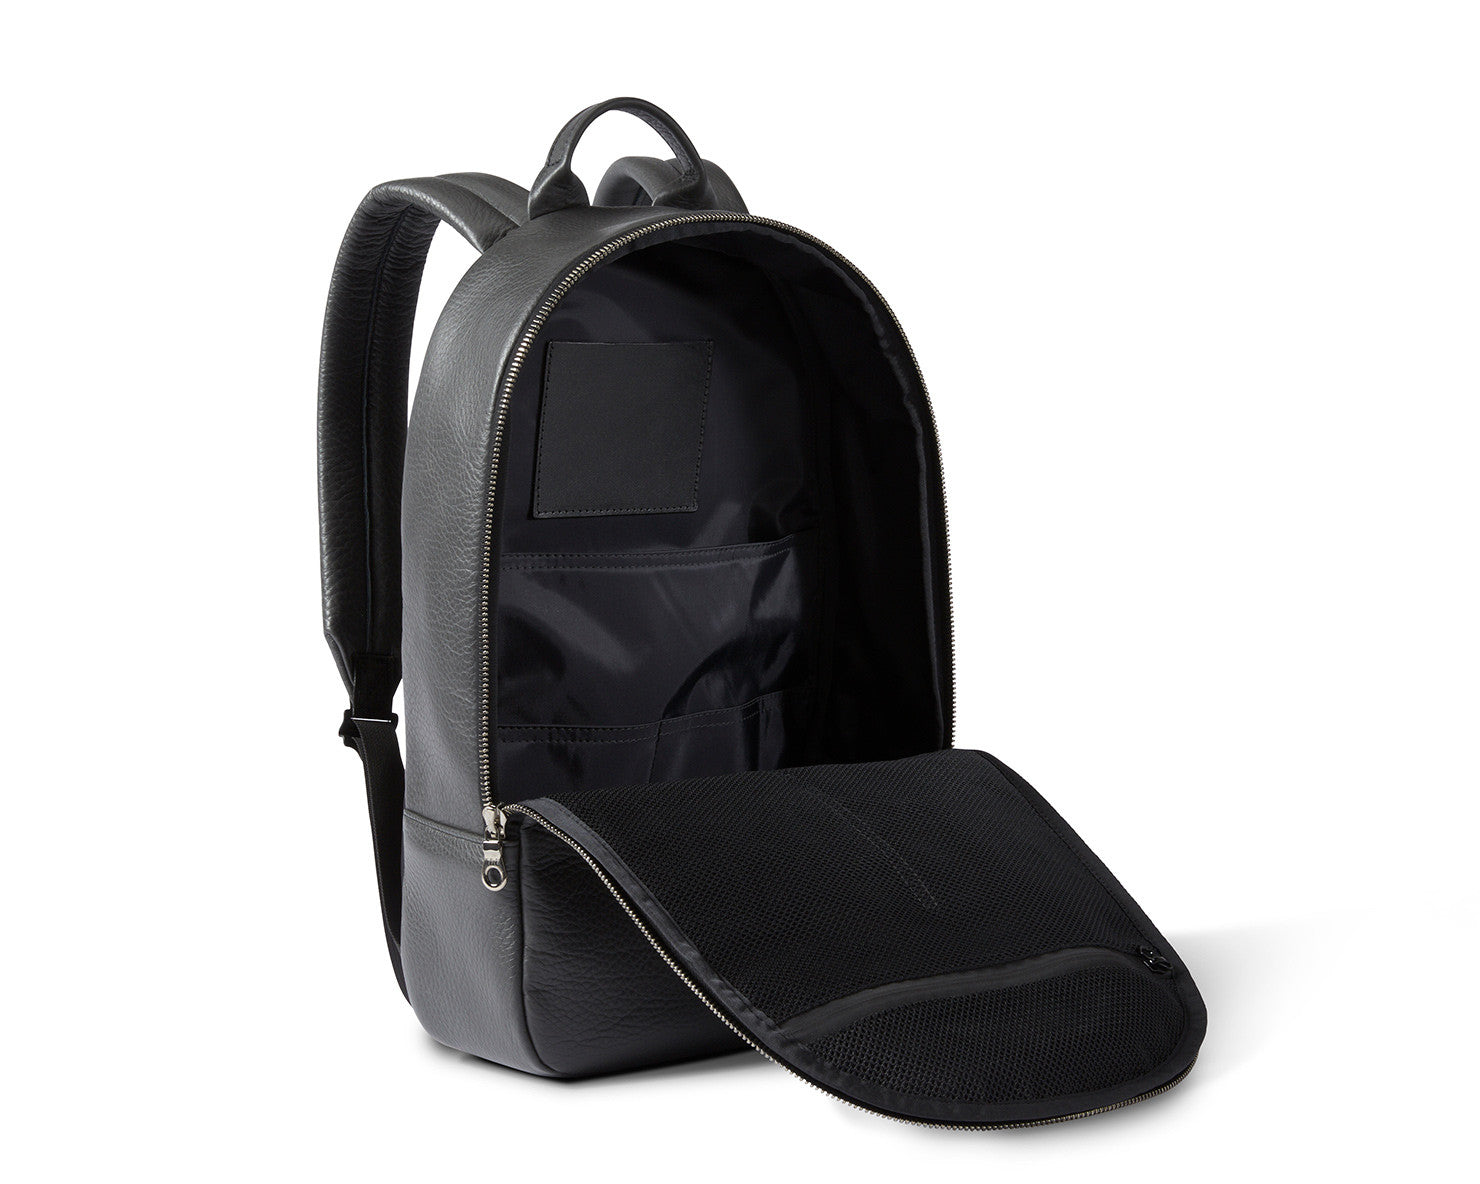 SPECIAL OPS BACKPACK 3.0 | KILLSPENCER® - Charcoal Grey Leather